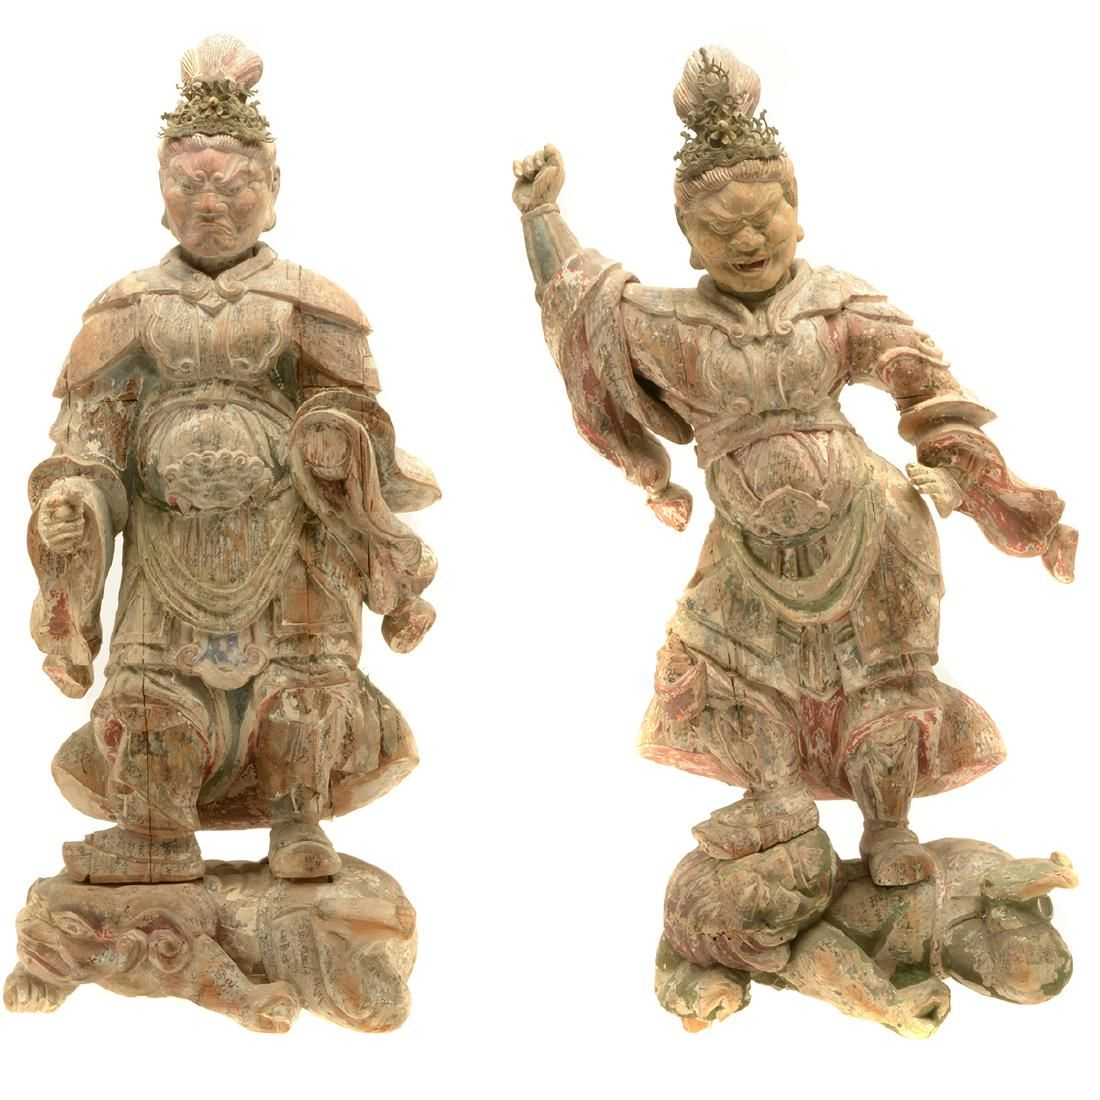 Pair of Carved Wood Guardian Kings, Muromachi Period